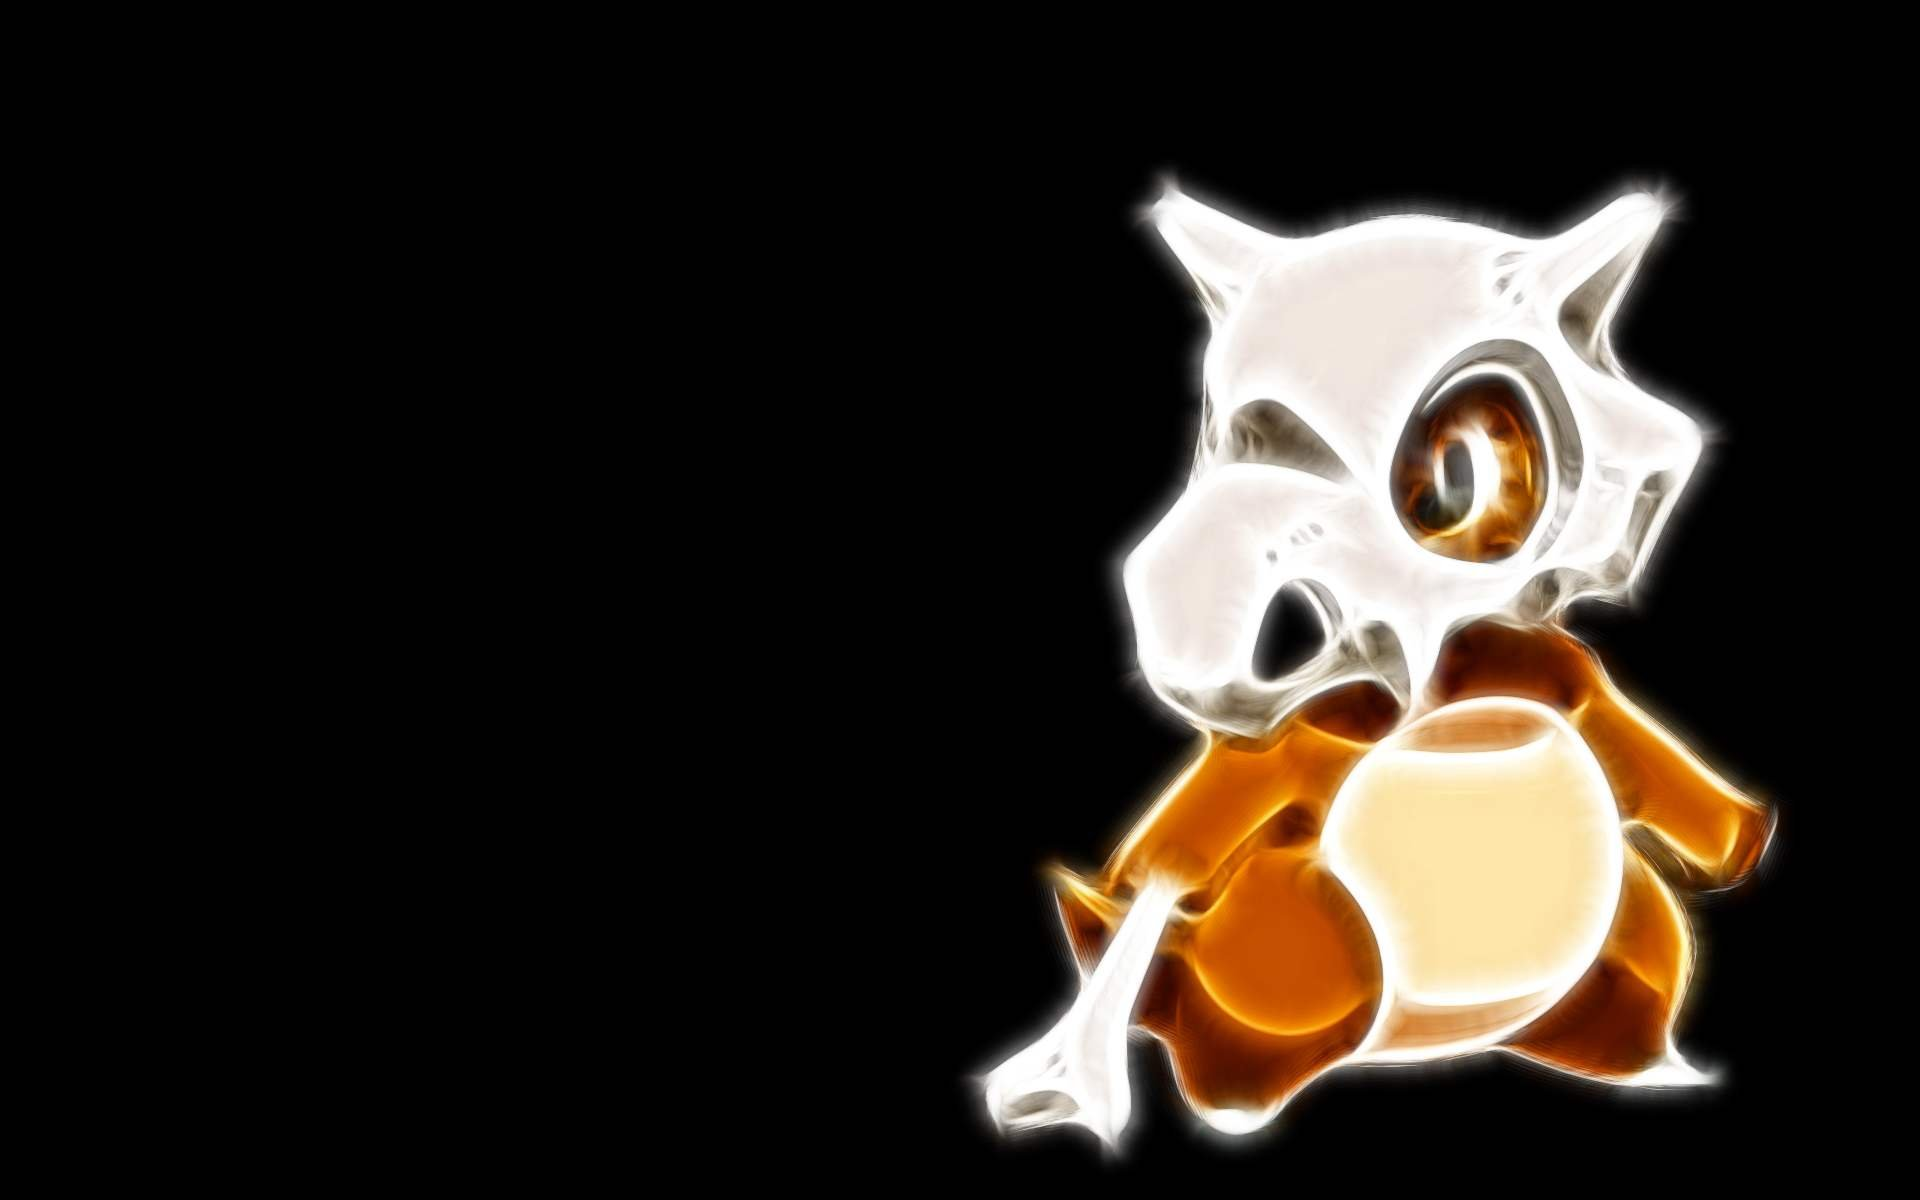 Cubone 2 Pokemon Wallpaper 1920x1200